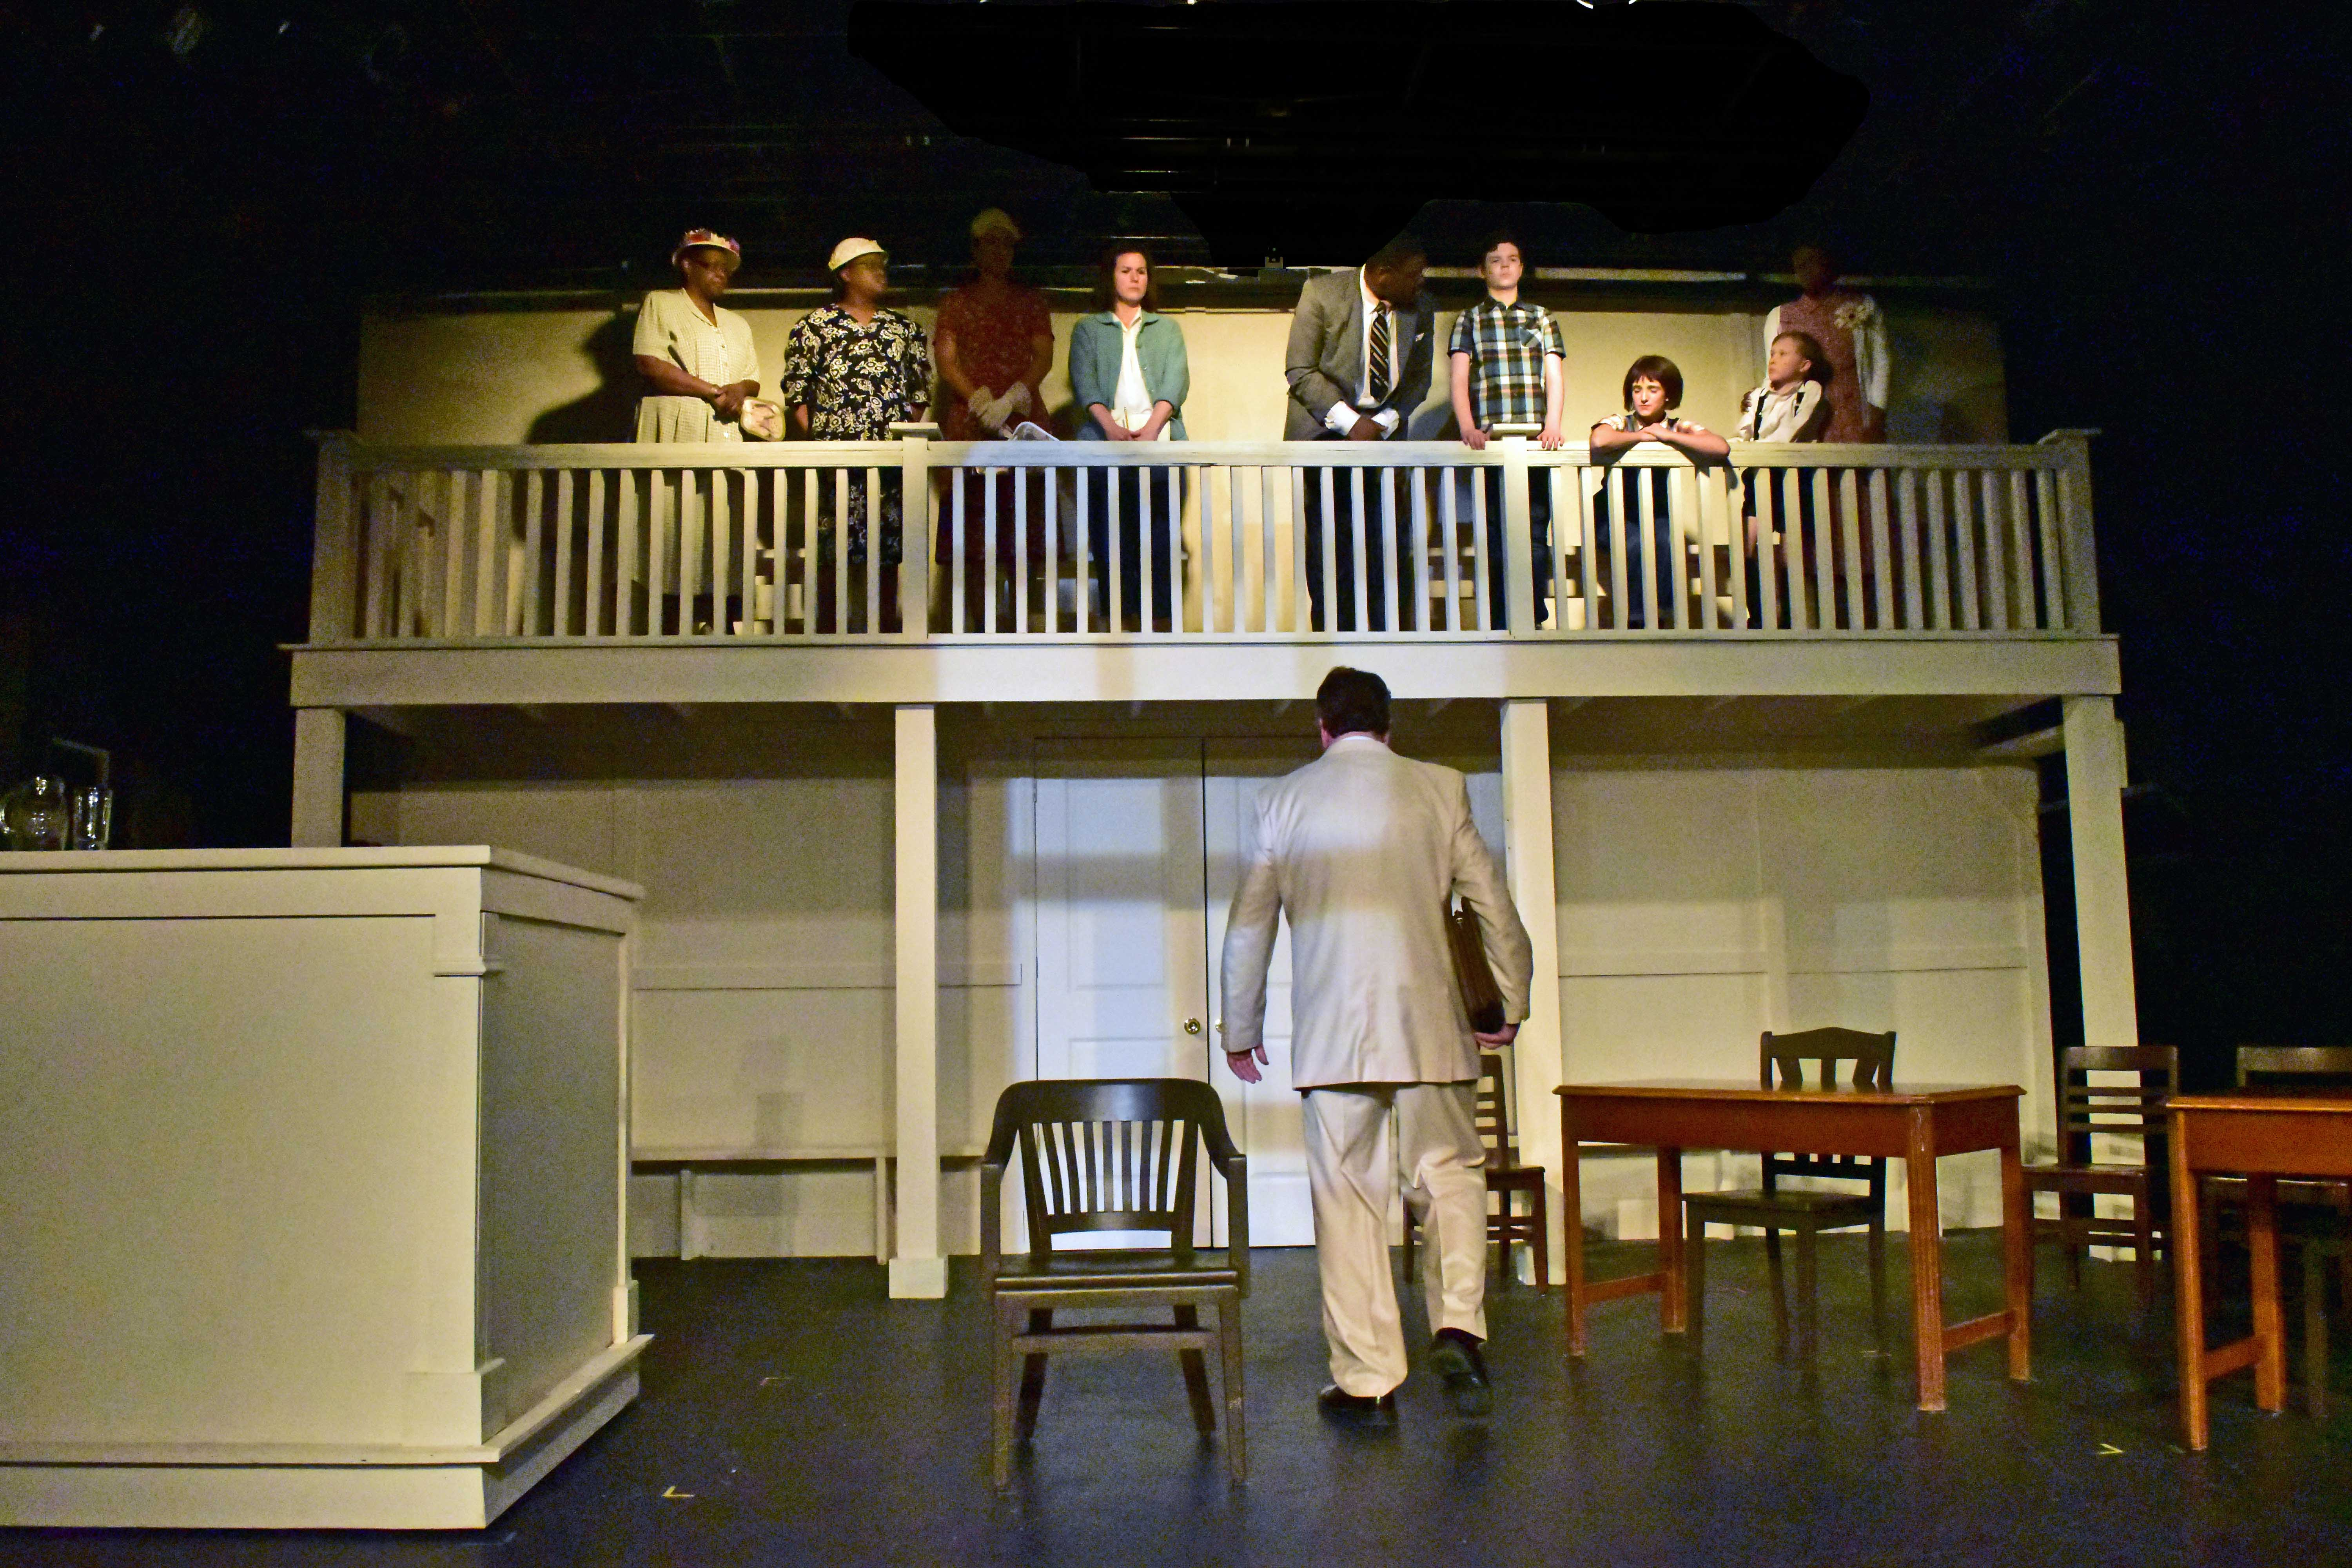 The Set of the Providence Players To Kill a Mockingbird by Ingrid and Patrick David Courtroom Photo by Chip Gertzog Providence Players